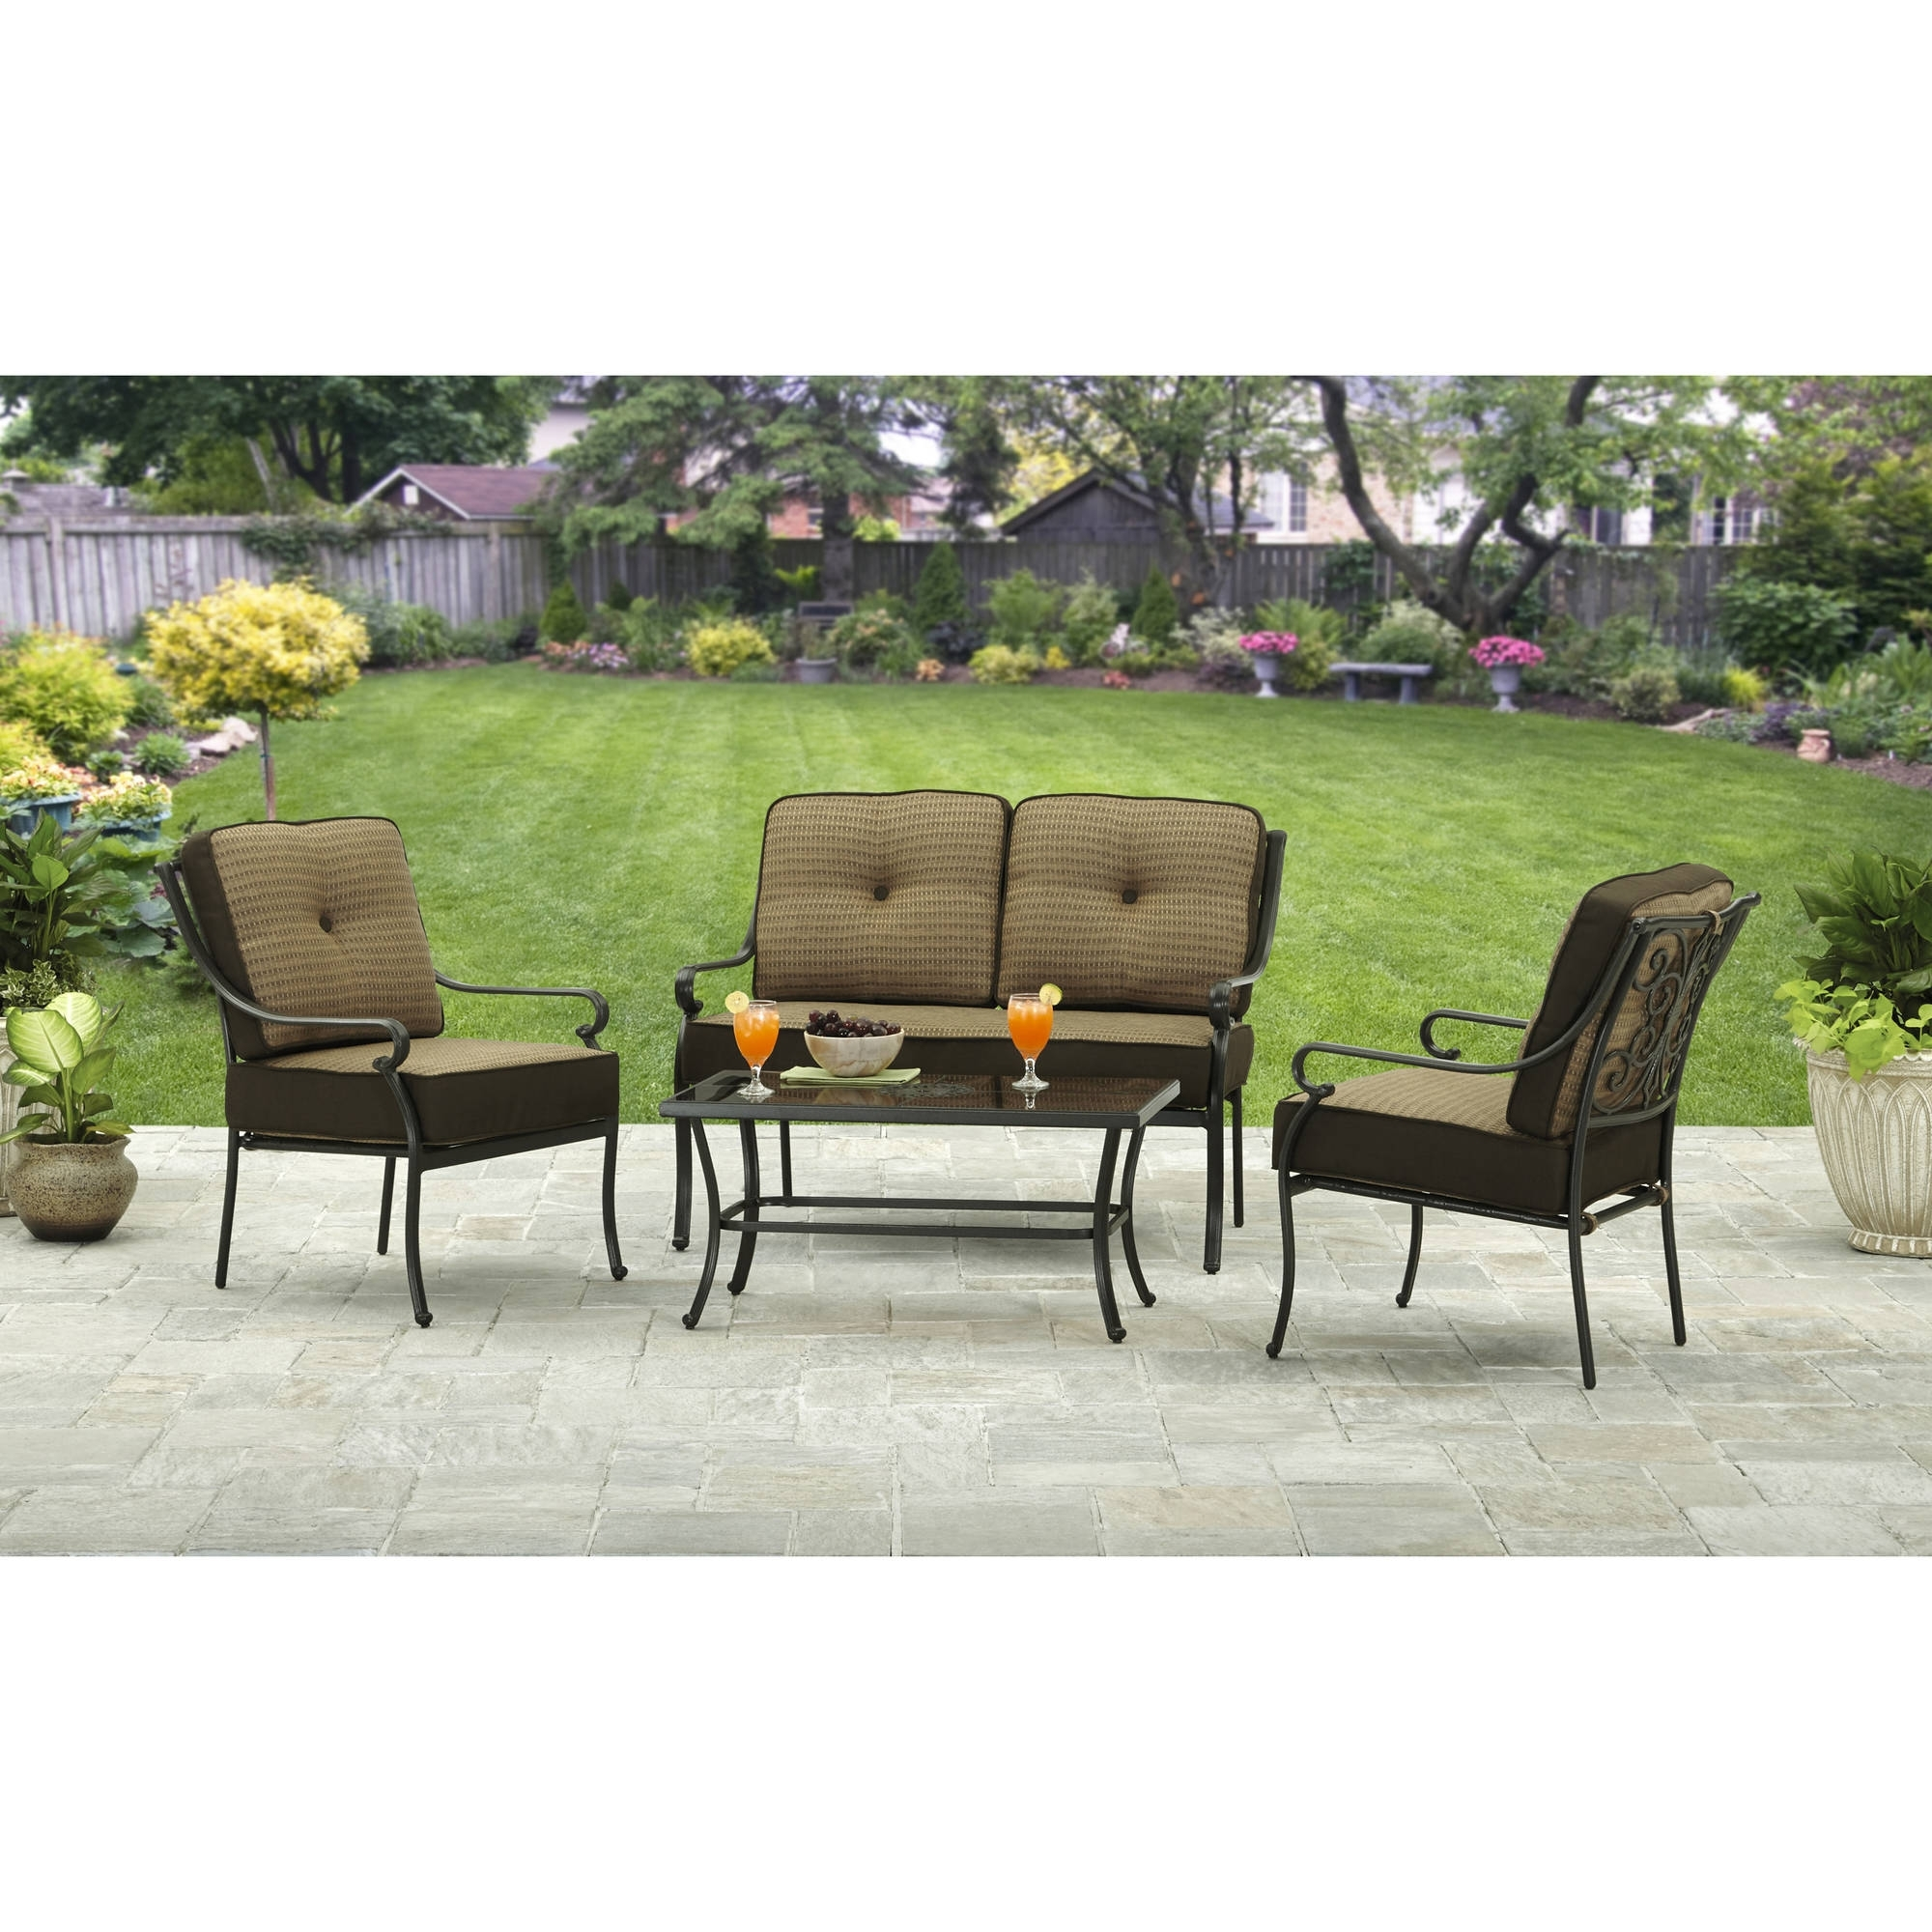 Widely Used Better Homes And Gardens Bailey Ridge 4 Piece Outdoor Conversation Pertaining To 4 Piece Patio Conversation Sets (View 17 of 20)